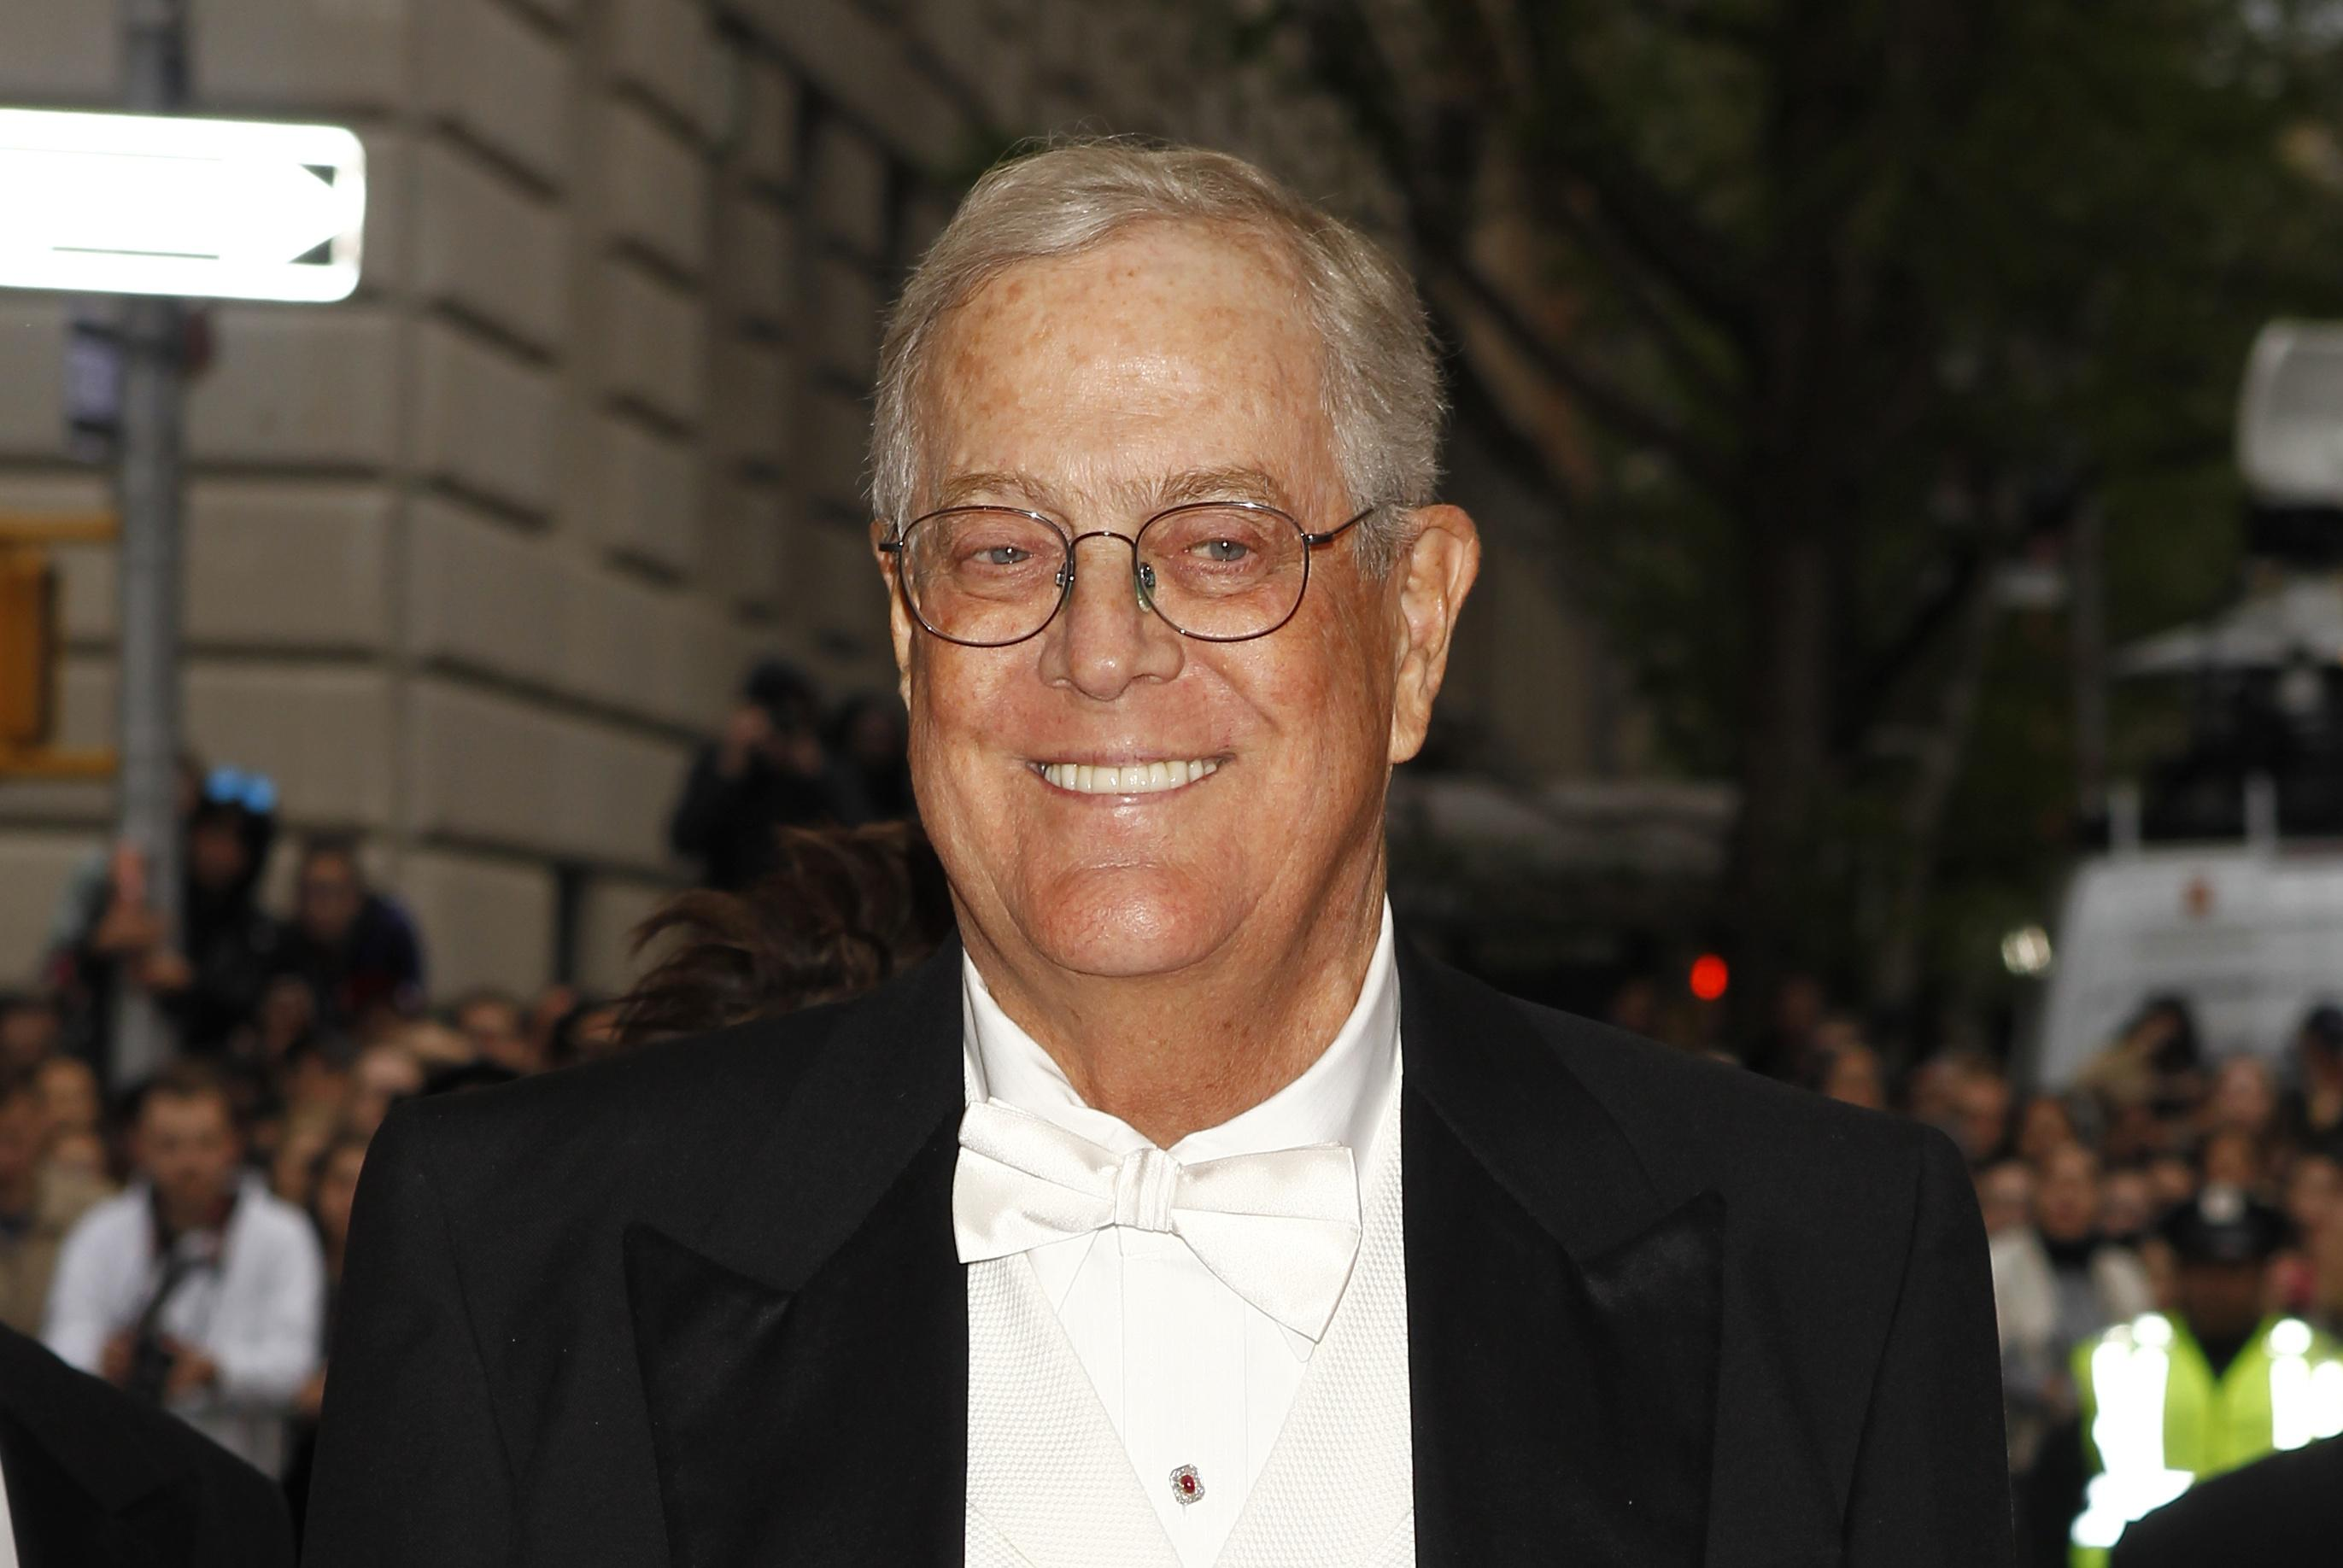 Conservative Icon David Koch Leaving Business, Politics